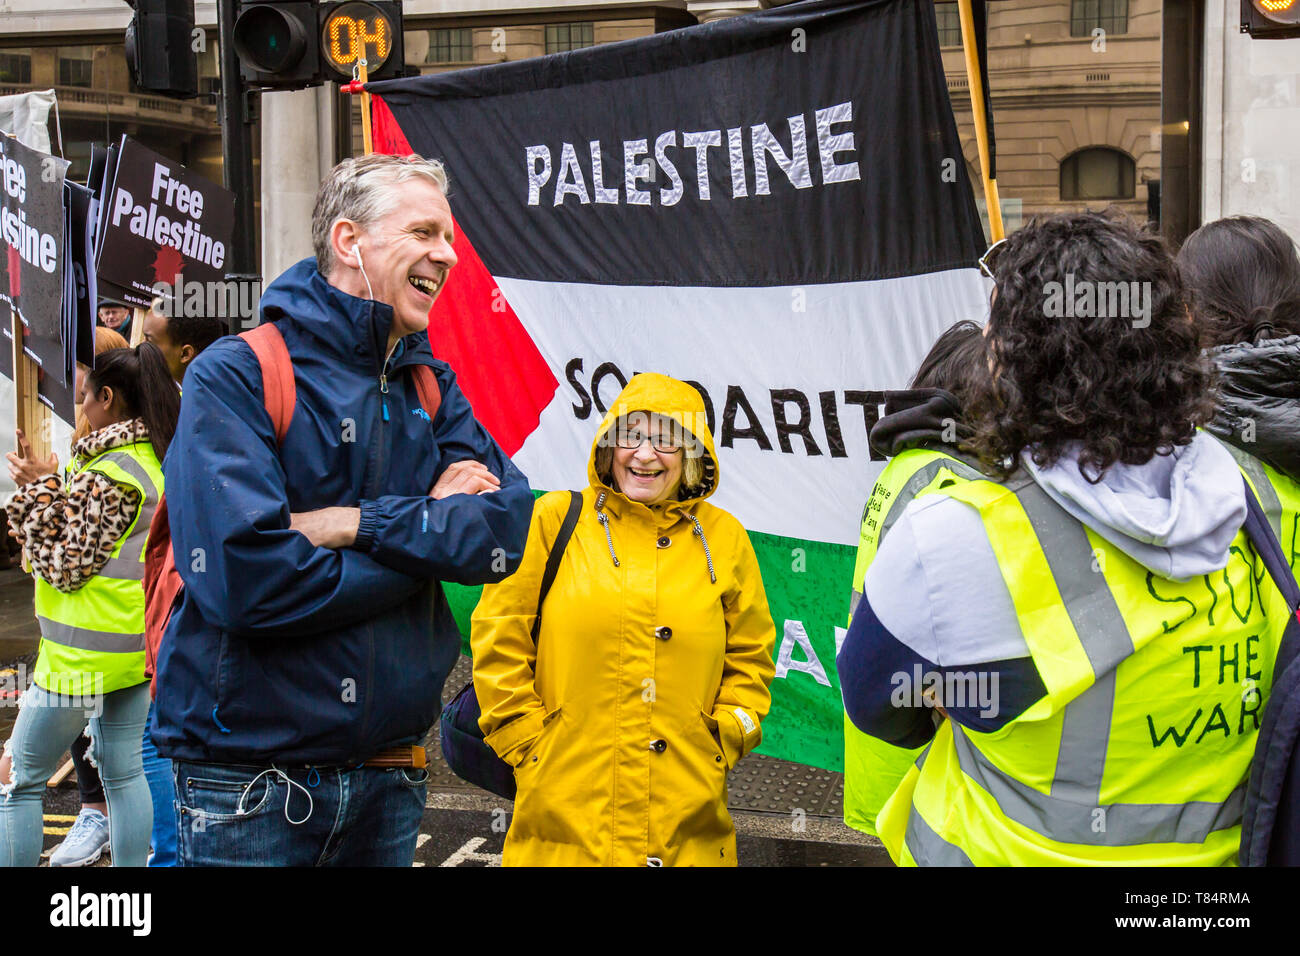 11 May, 2019. London,UK.  Thousands march for Palestine in central London demonstration organised by the Palestinian Solidarity Campaign. David Rowe/ Alamy Live News - Stock Image